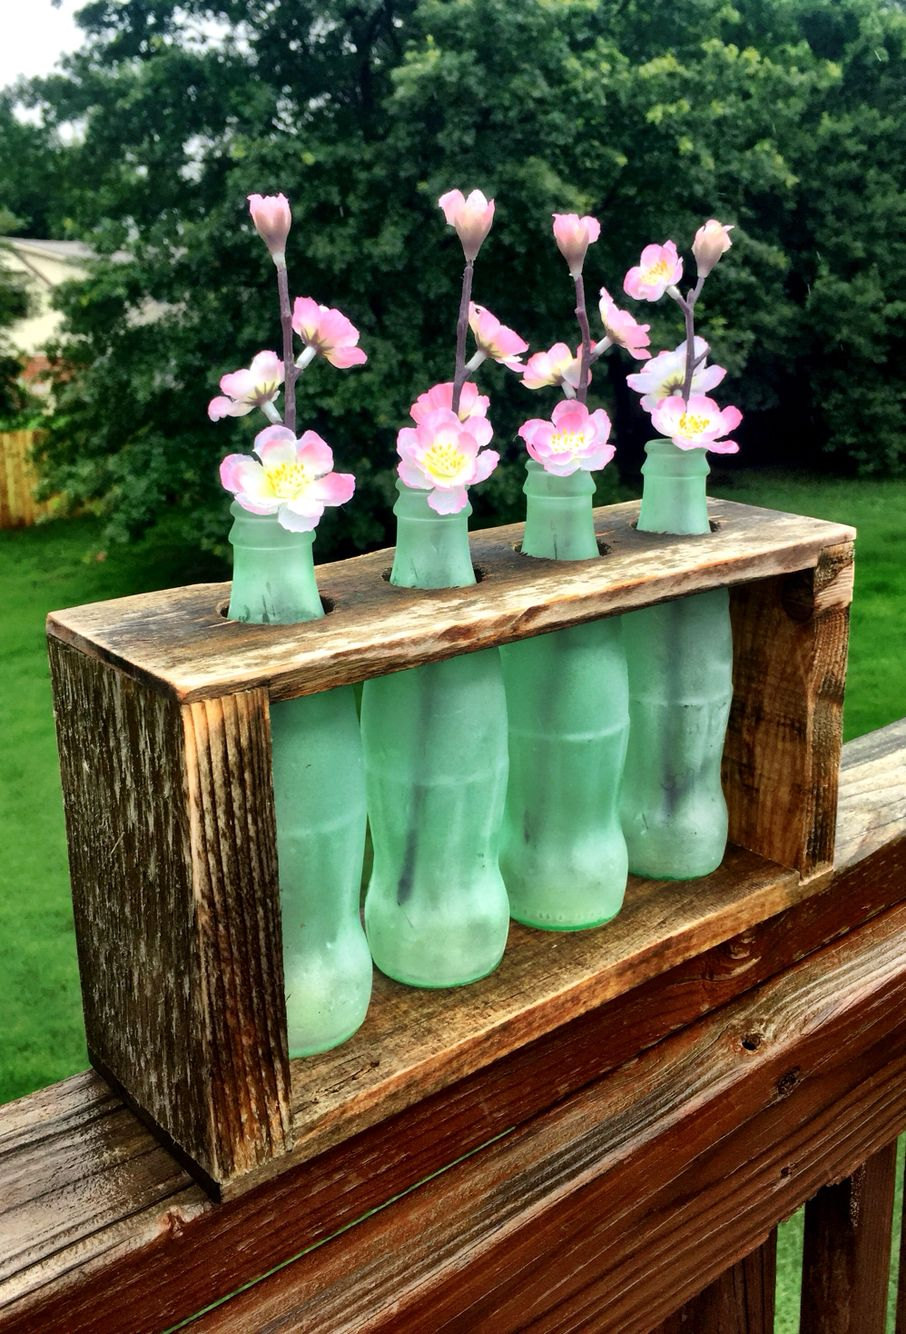 4 bottle vase holder for any occasion. Or no occasion at all.